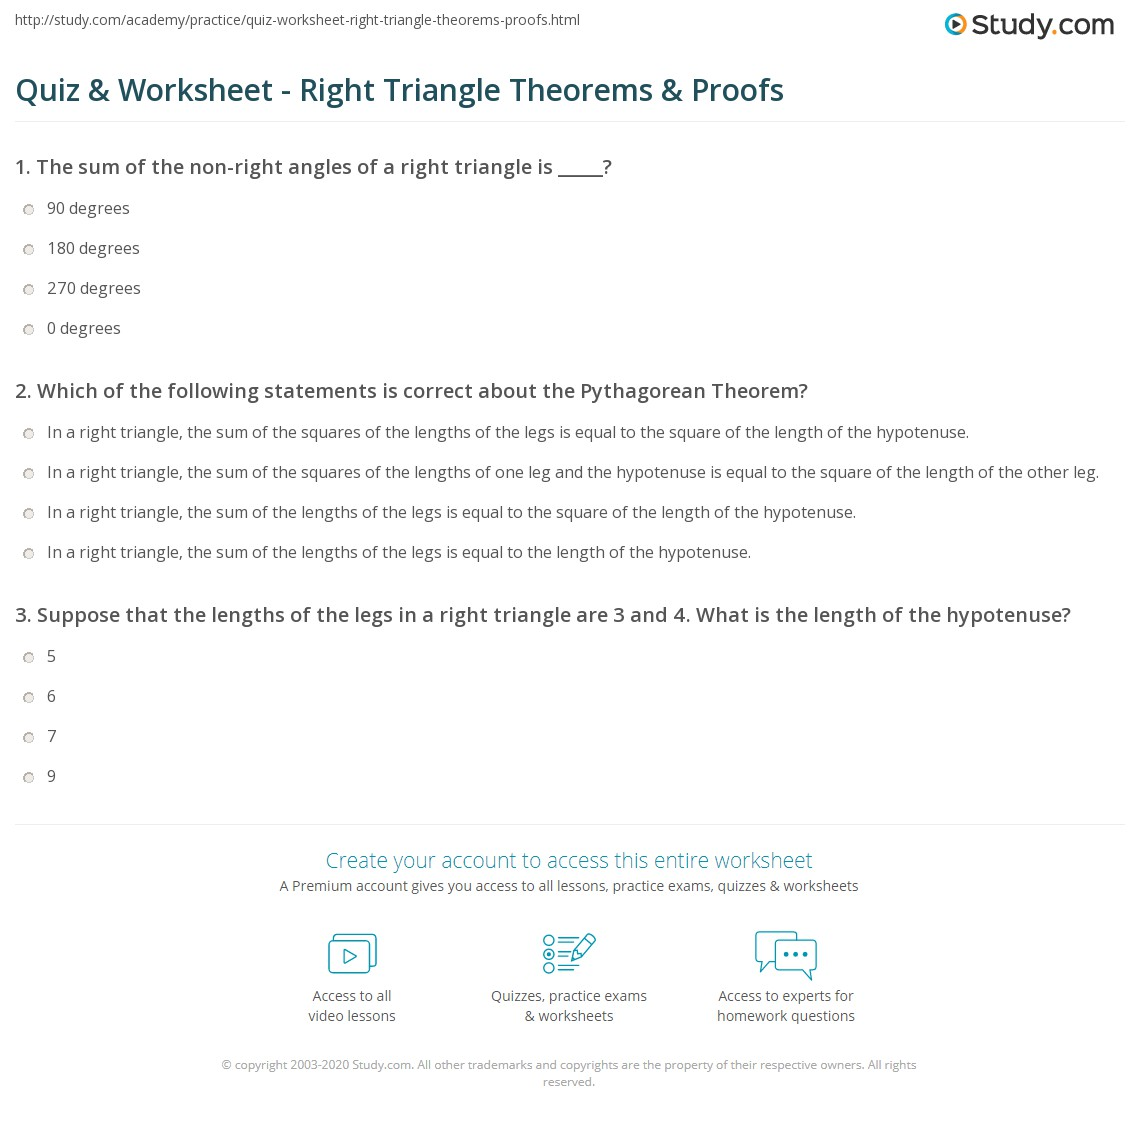 worksheet Easy Pythagorean Theorem Worksheet quiz worksheet right triangle theorems proofs study com which of the following statements is correct about pythagorean theorem